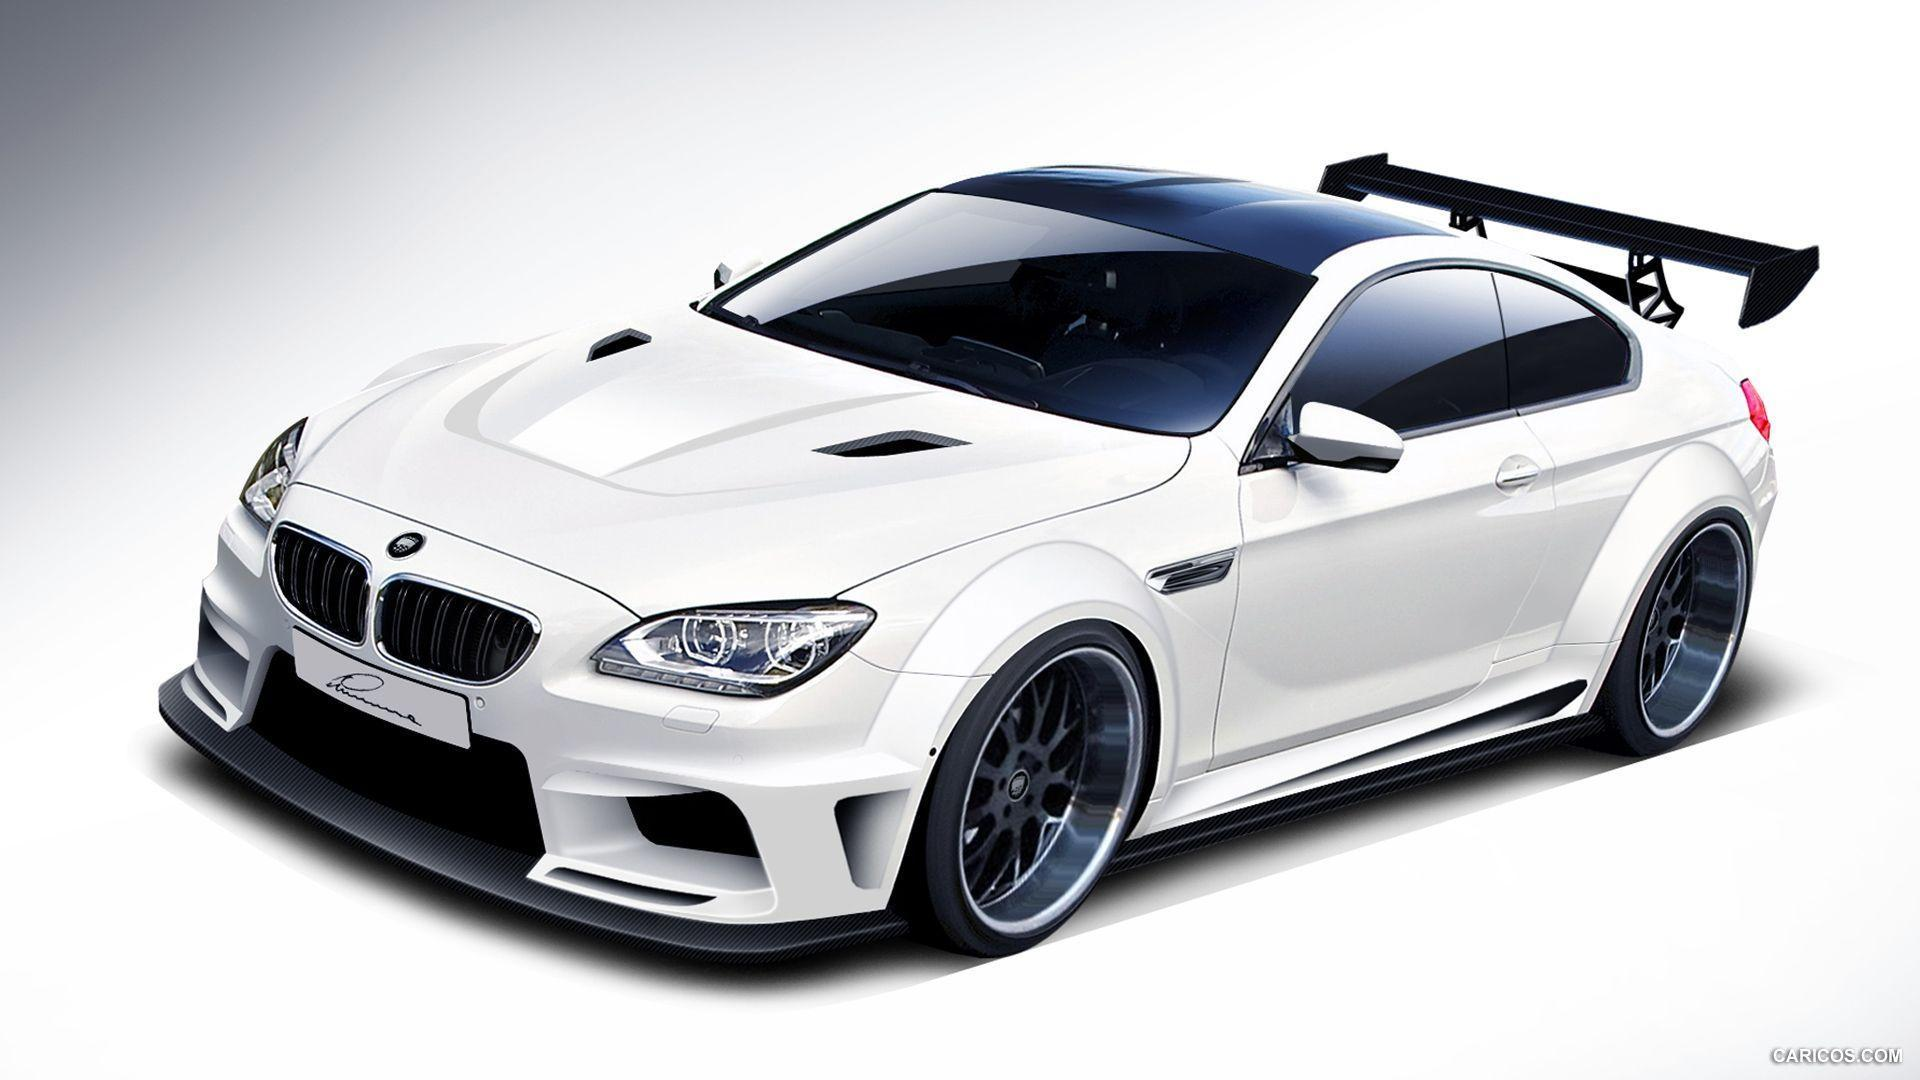 BMW M6 Wallpapers - Wallpaper Cave